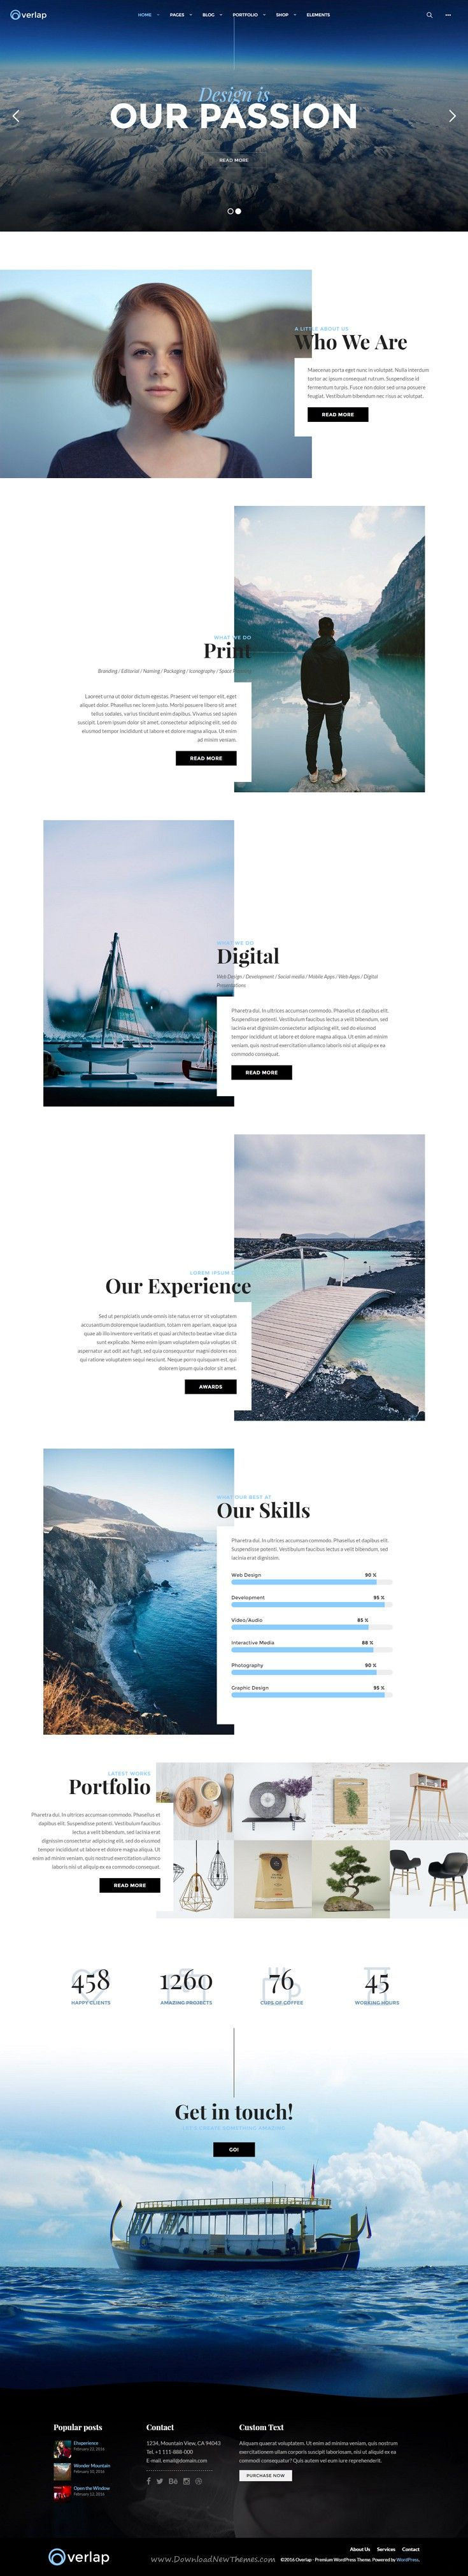 Overlap comes with unique layout designs for showing your creative portfolios, this WordPress theme includes smart theme options so you can easily customize every aspect of your site with just a few clicks. Download Now➝ http://themeforest.net/item/overlap-high-performance-wordpress-theme/15344205?ref=Datasata